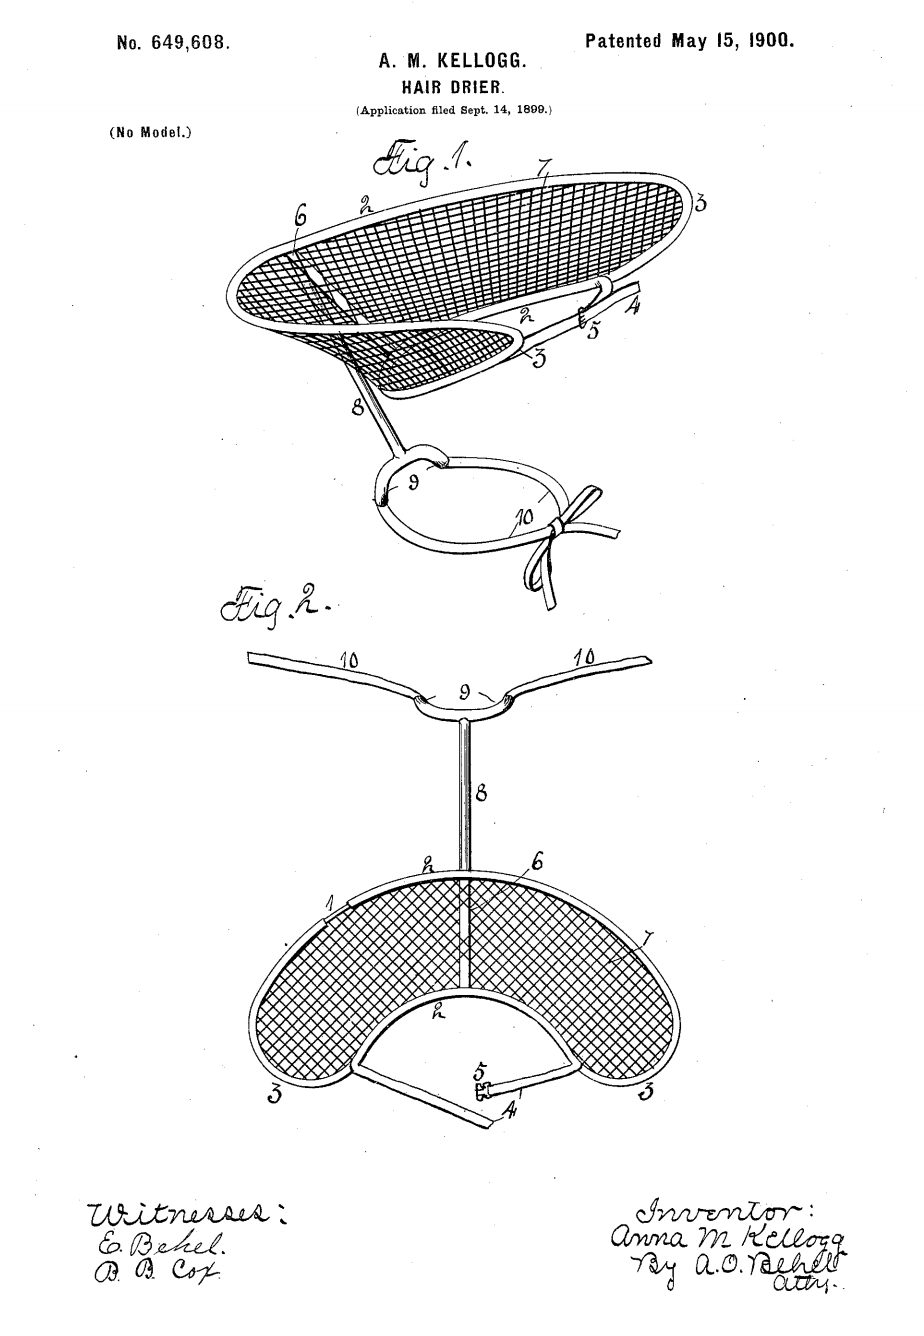 U.S. Patent US649608 A, filed 1899